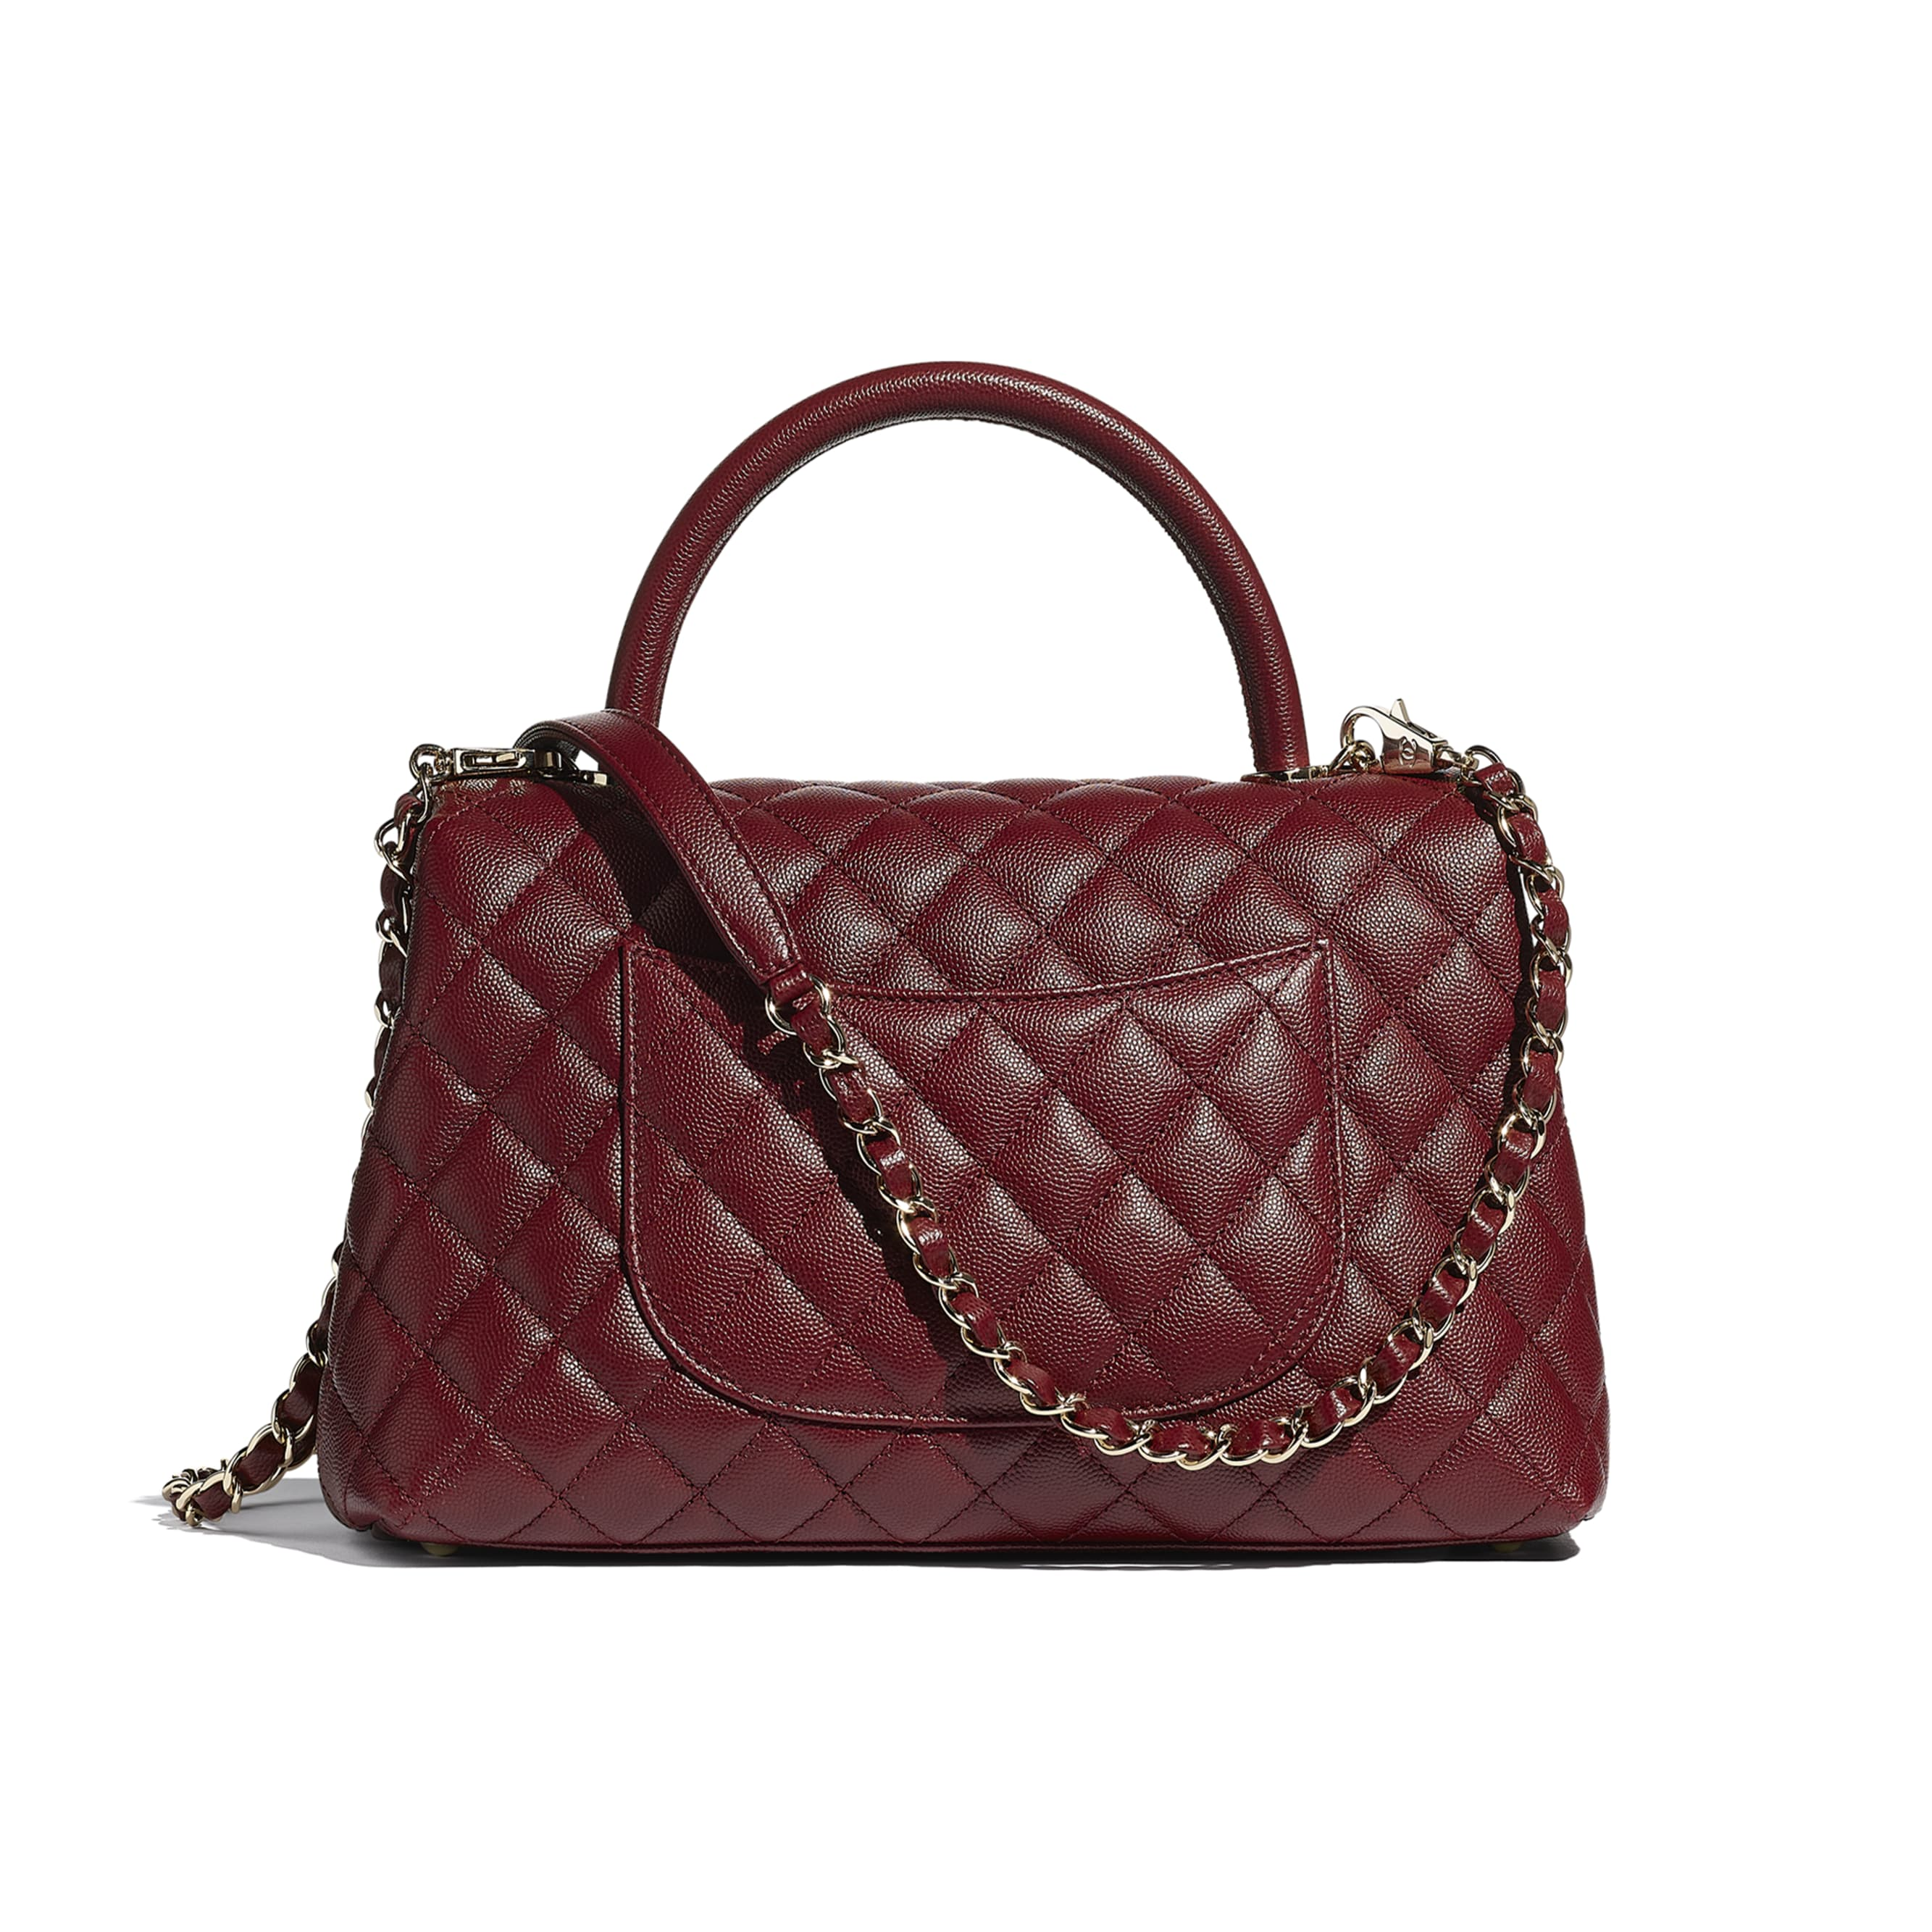 Large Flap Bag With Top Handle - Burgundy - Grained Calfskin & Gold-Tone Metal - CHANEL - Alternative view - see standard sized version